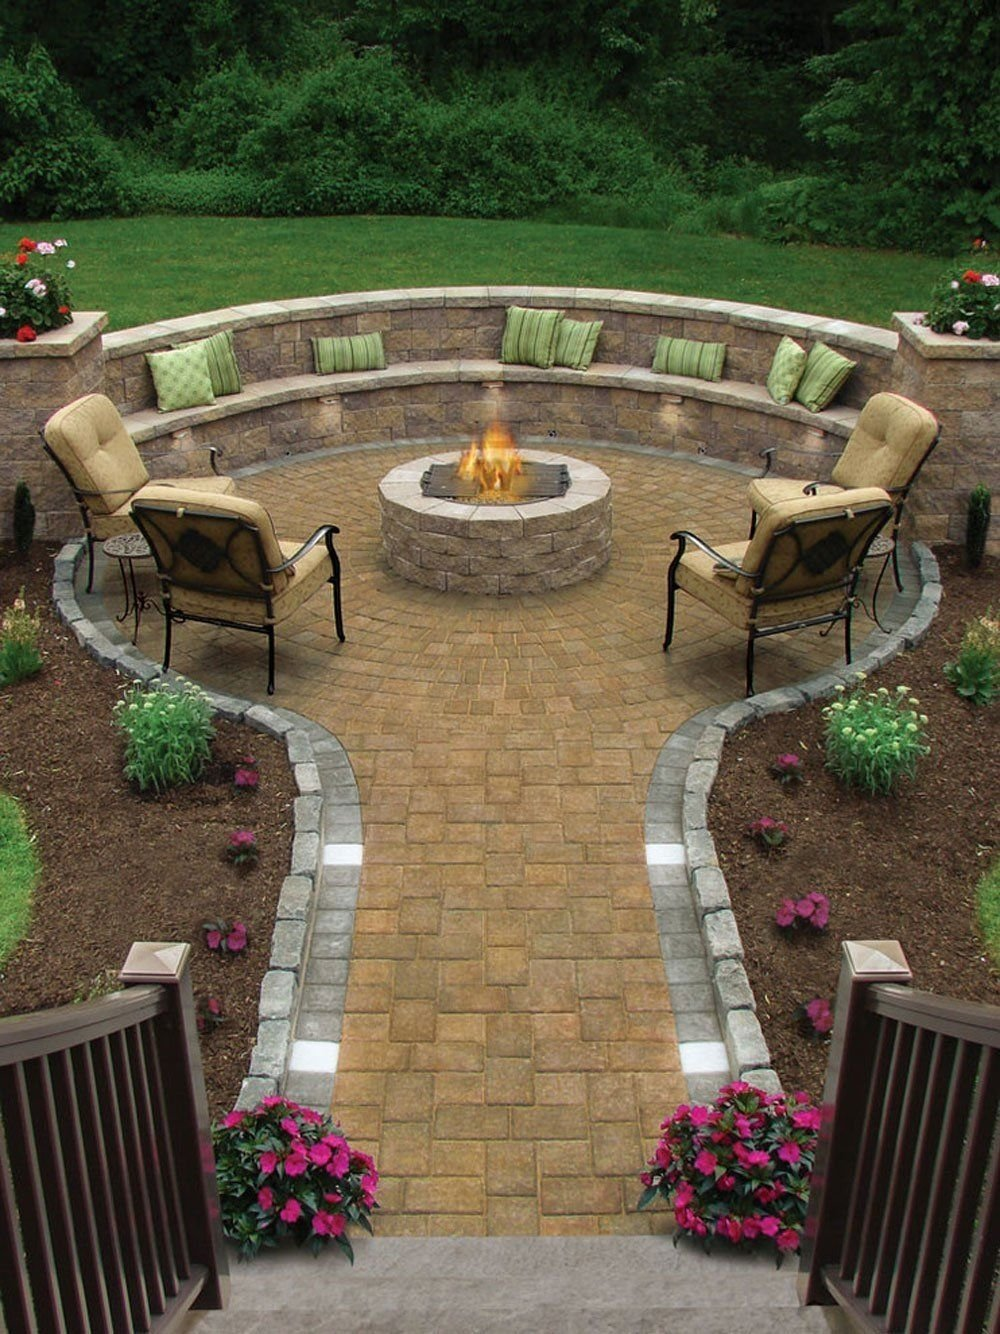 10 Best Fire Pit Ideas Outdoor Living 17 of the most amazing seating area around the fire pit ever 5 2020